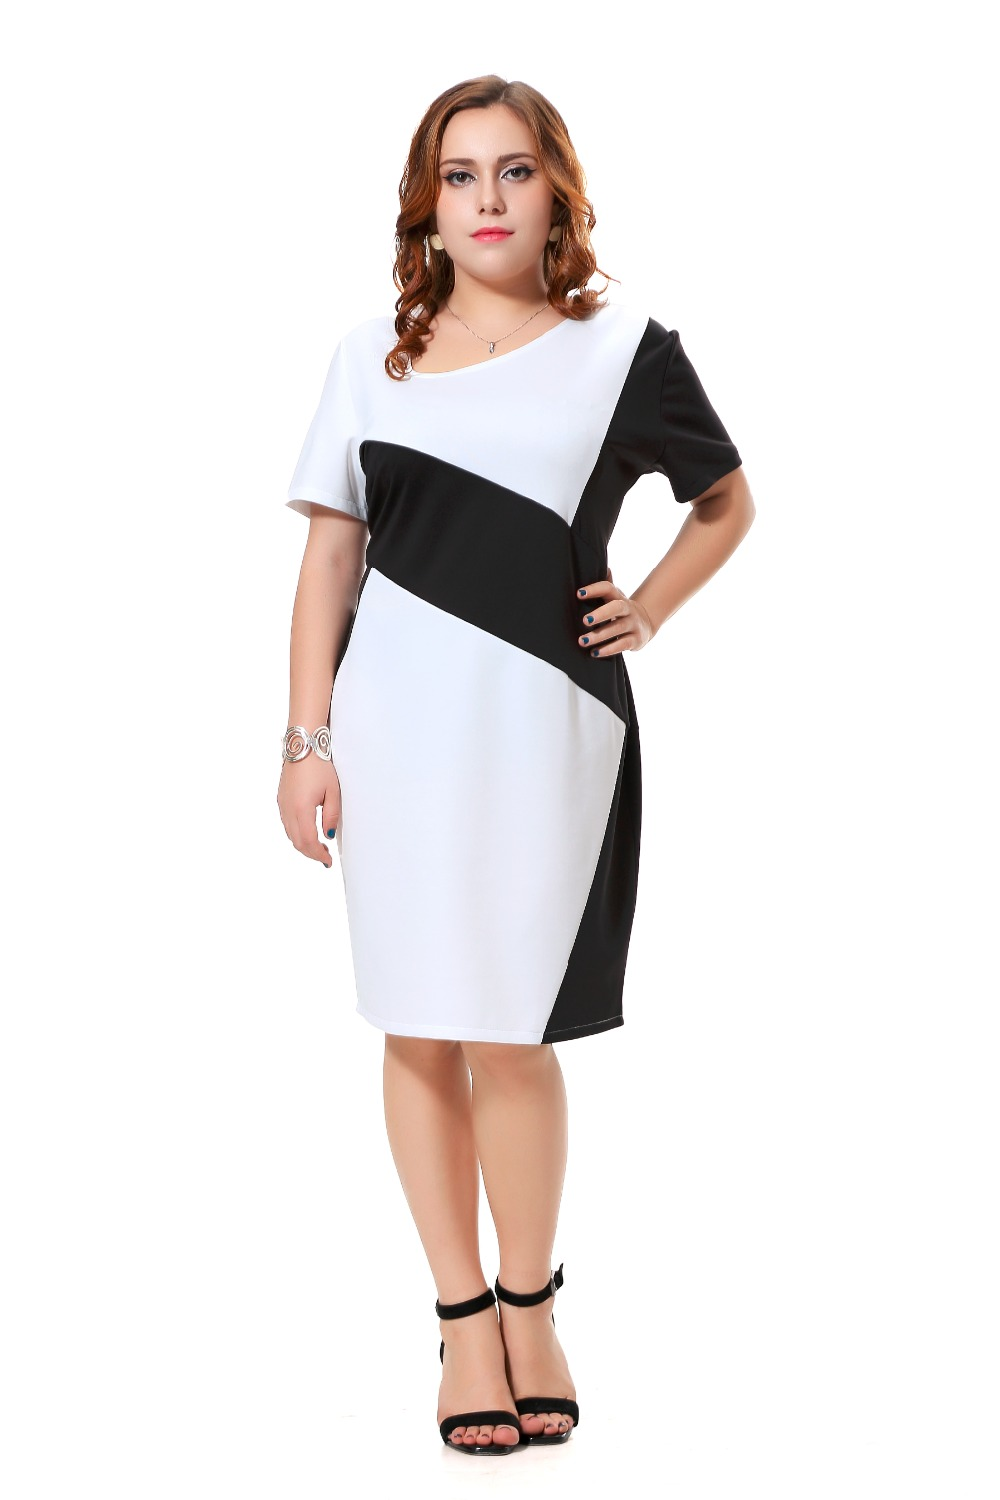 Find women's white, black, red, floral & printed plus size dresses at Torrid. Our collection features maxi dresses, bodycon dresses, LBD's and more! We carry the latest dress silhouettes for both casual and formal occasions in sizes